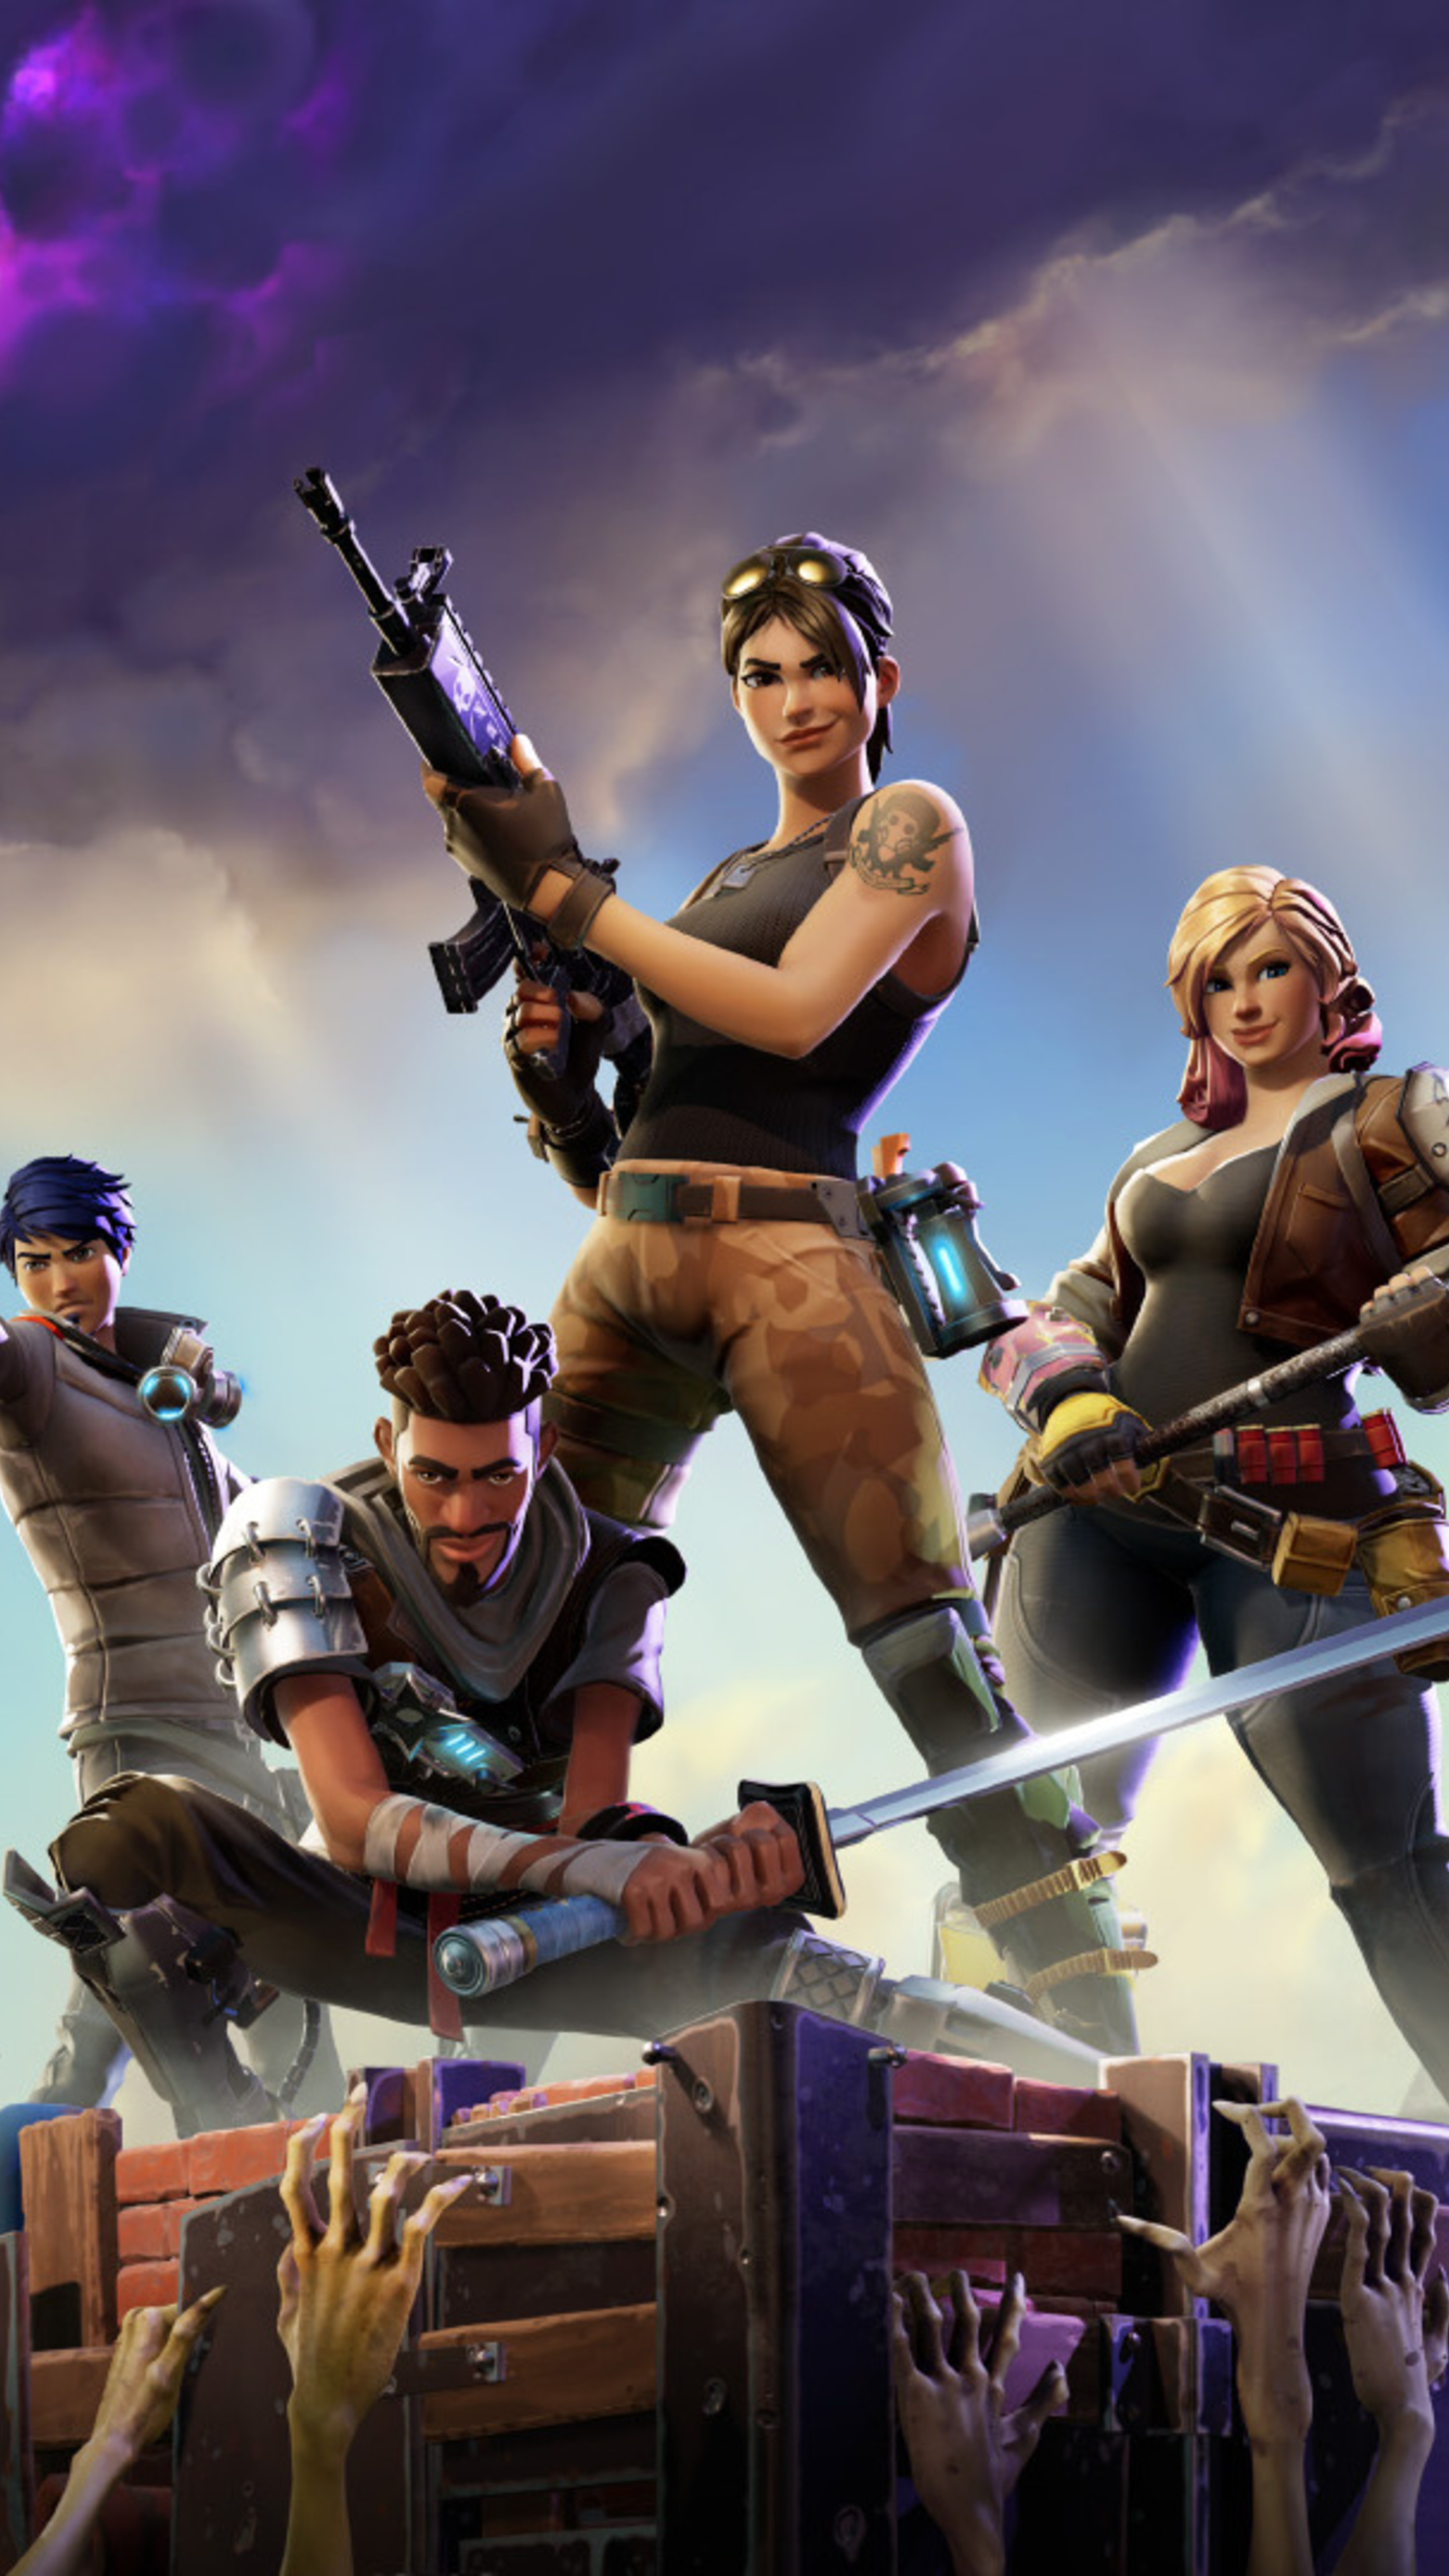 2160X3840 Fortnite Hd Sony Xperia X,Xz,Z5 Premium Hd 4K Wallpapers, Images -8117